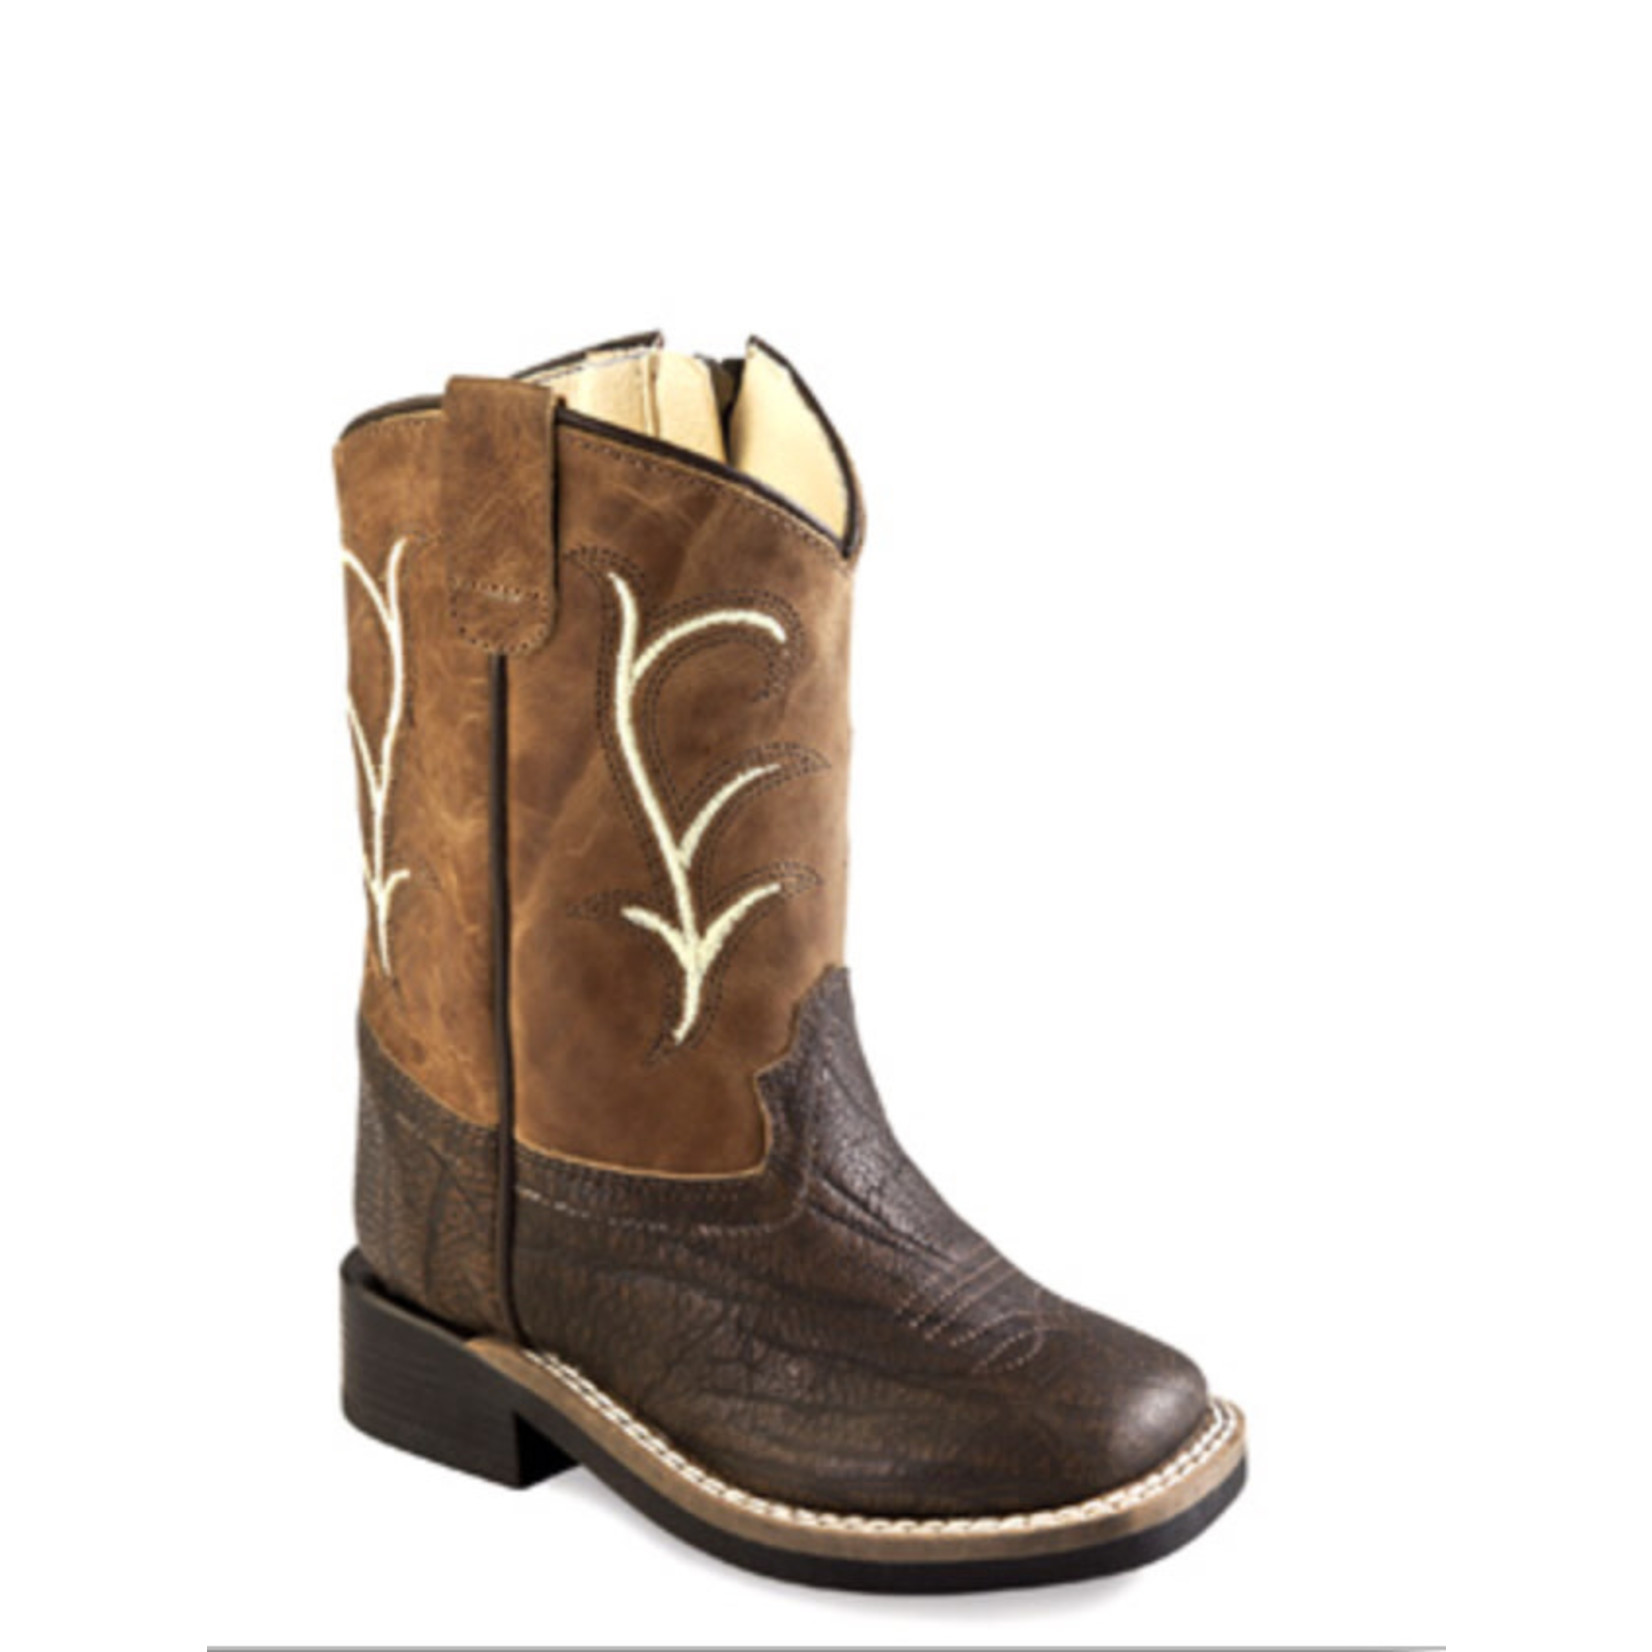 Old west Old West Children Brown Square Toe with Zipper BSI1819